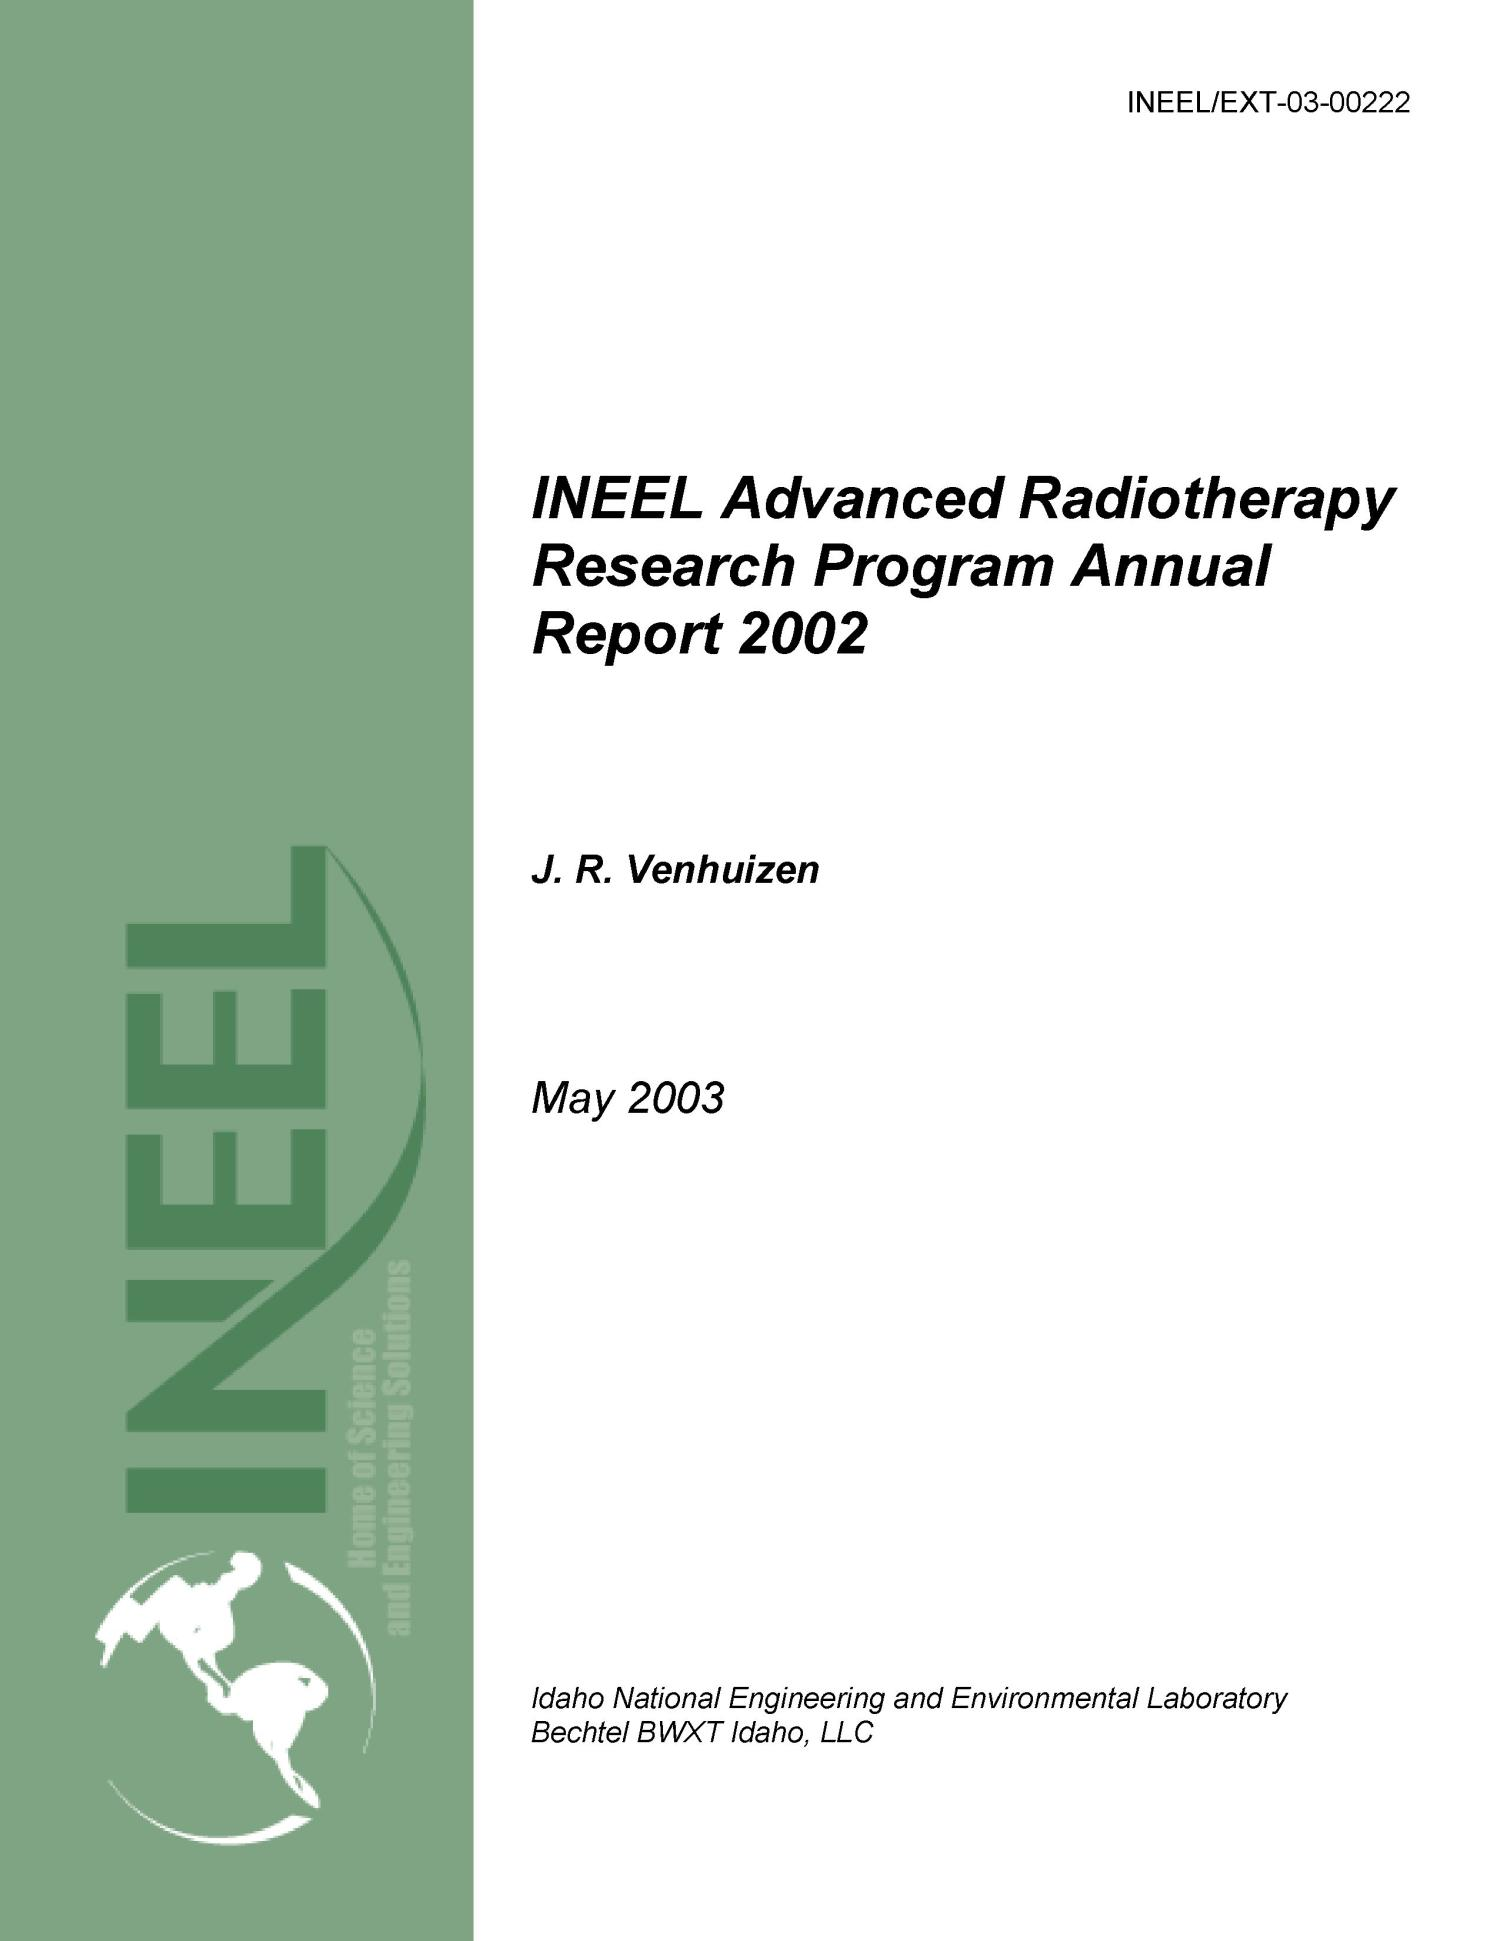 INEEL Advanced Radiotherapy Research Program Annual Report for 2002                                                                                                      [Sequence #]: 1 of 55